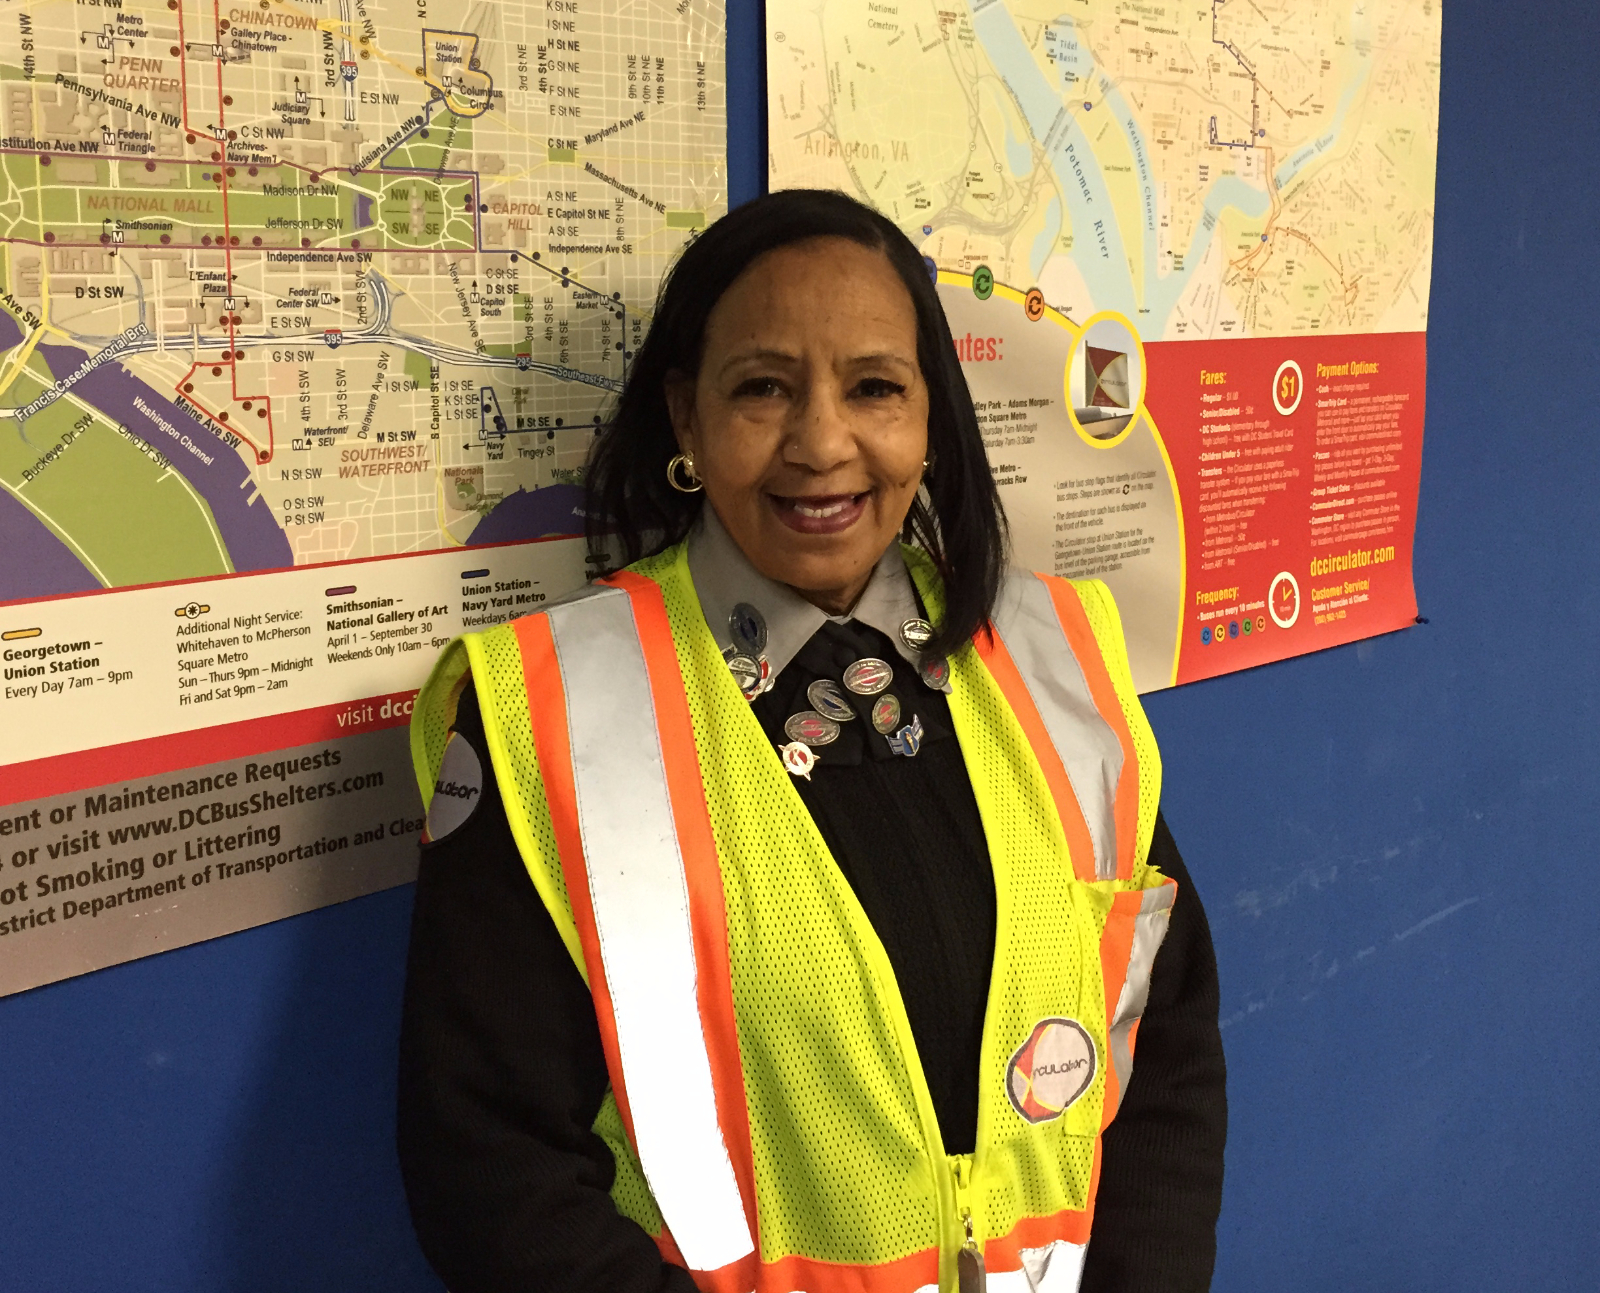 Operator Mabry poses in front of vintage Circulator route maps.